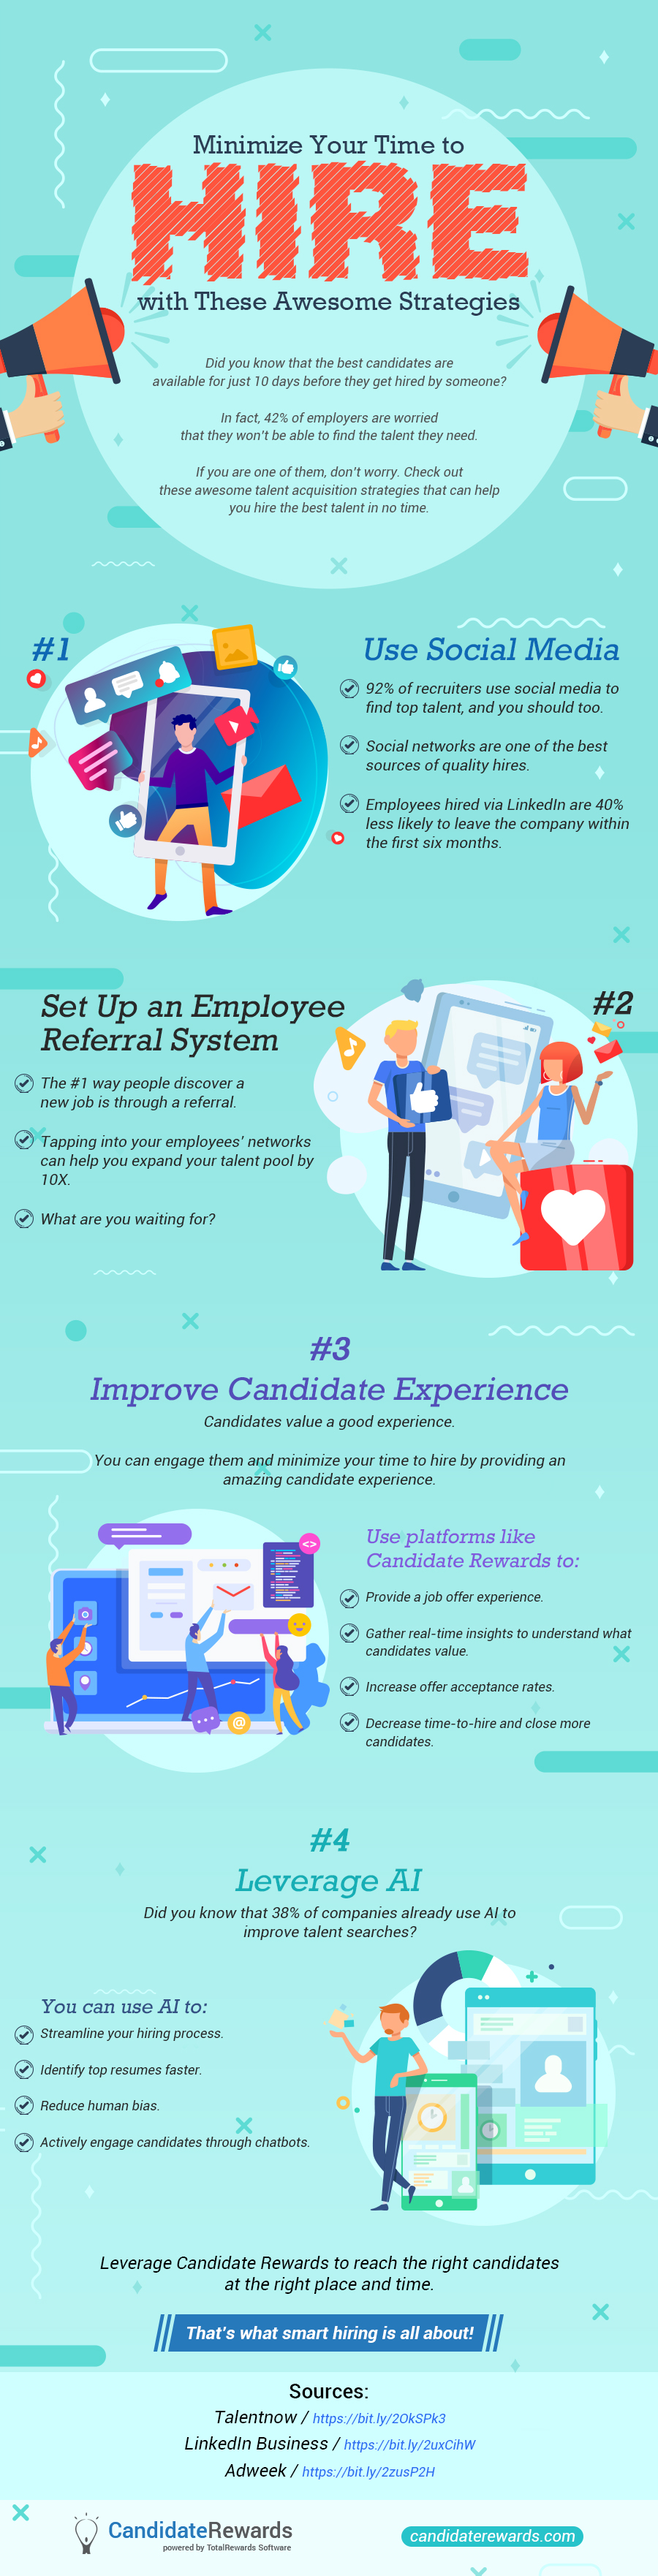 Here's How You Can Minimize the Time to Hire New Employees